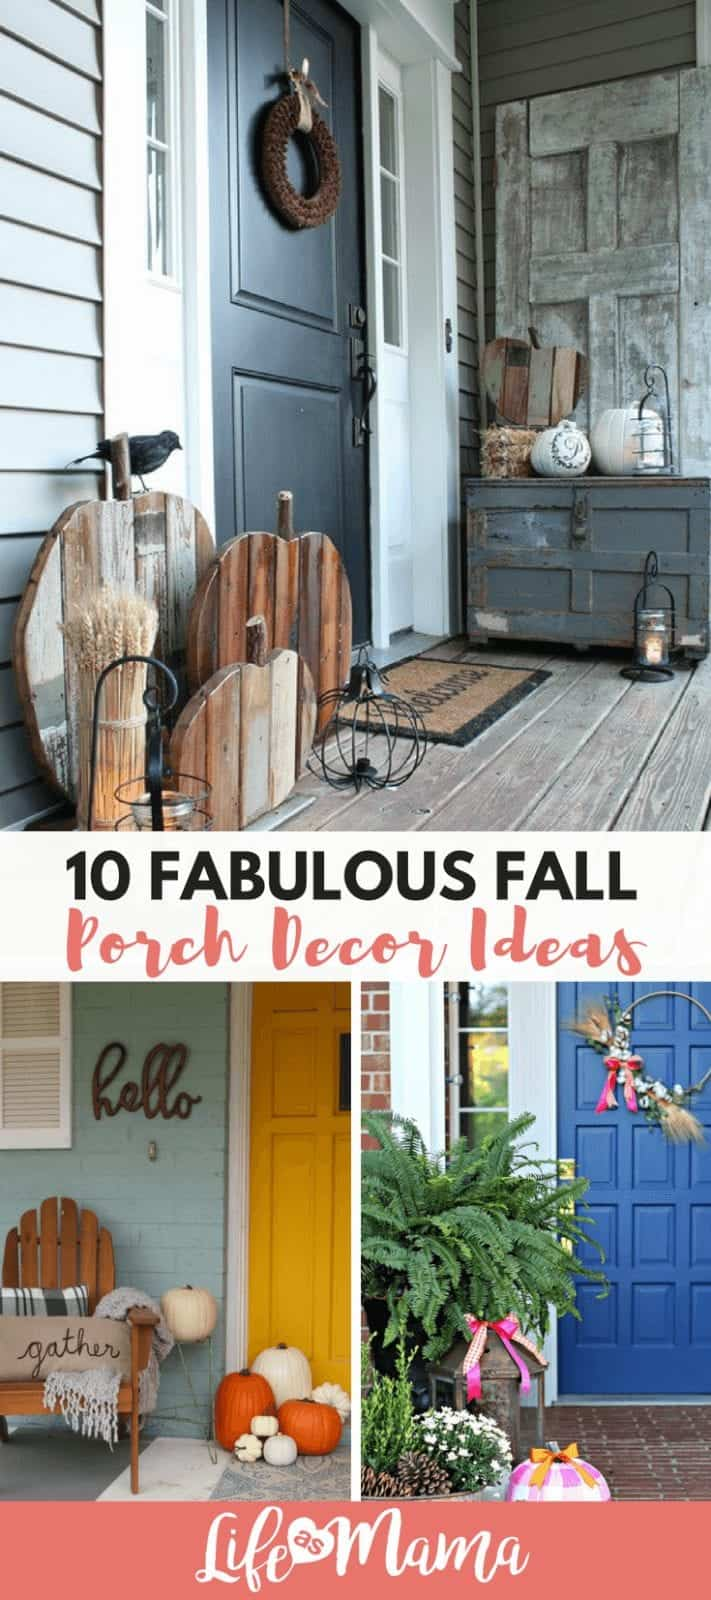 10 Fabulous Fall Porch Decor Ideas